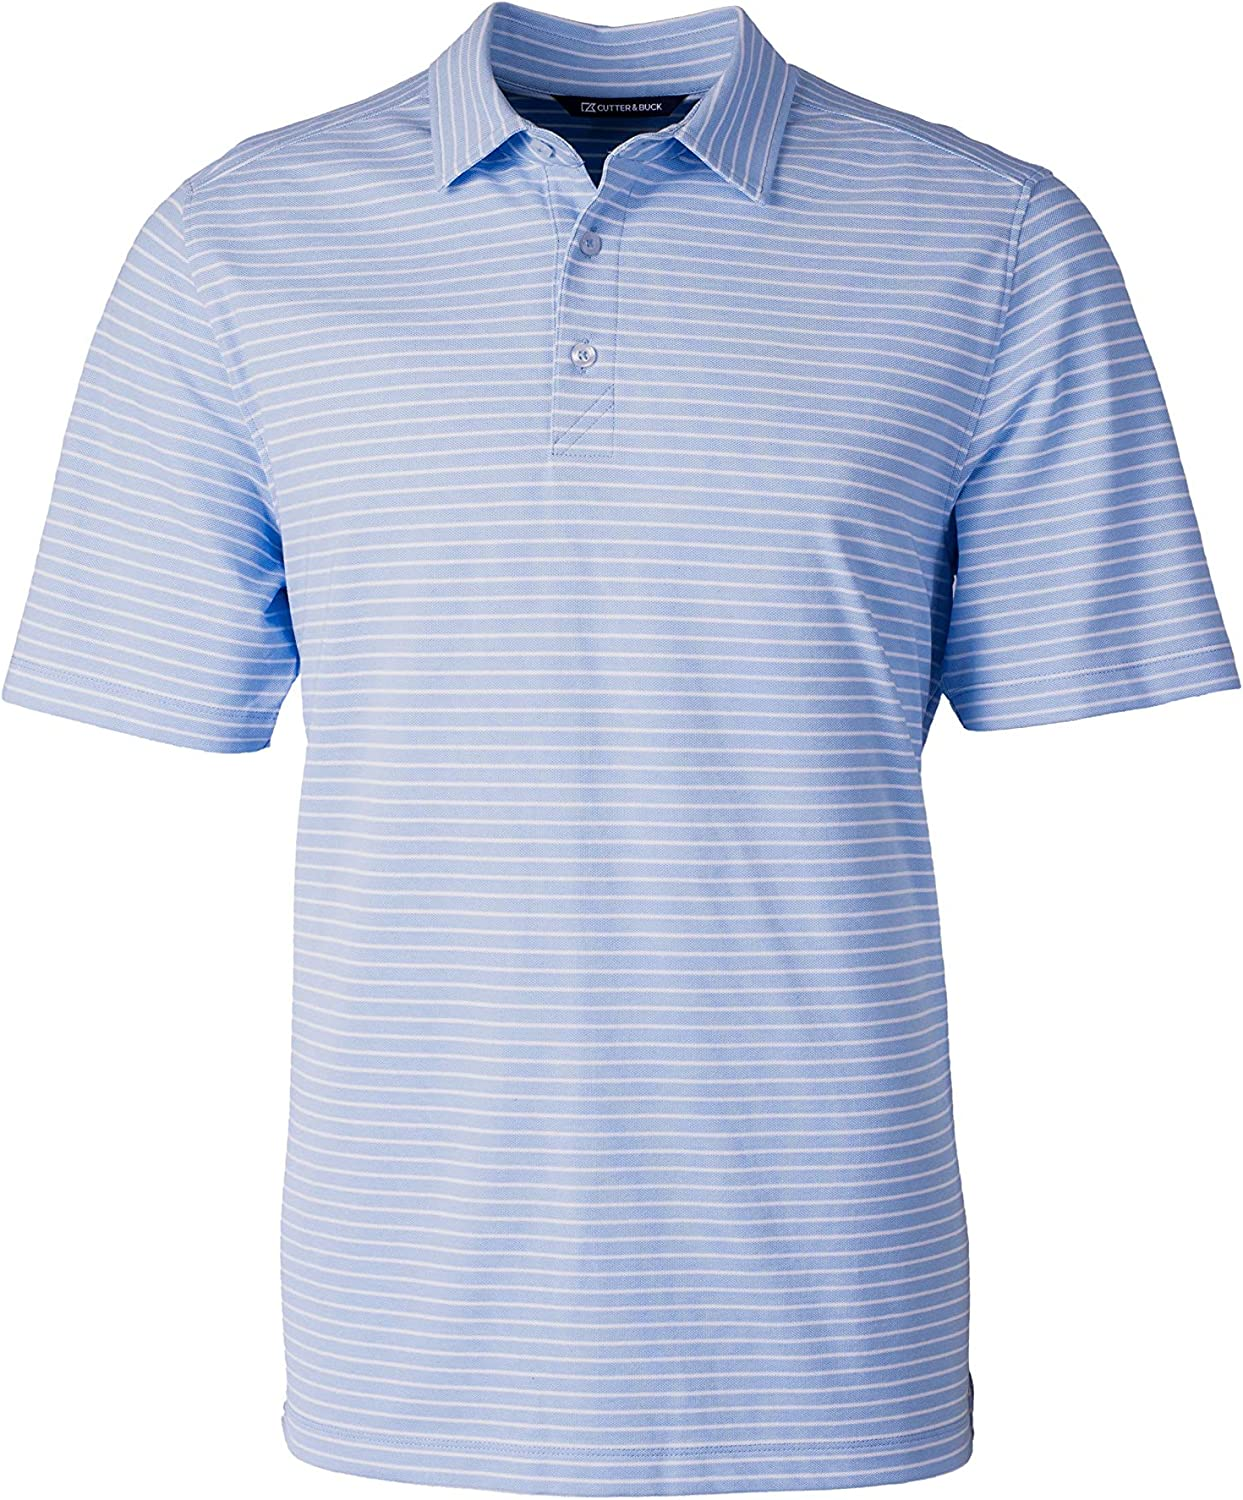 Cutter San Antonio Mall Outlet sale feature Buck Men's Polo